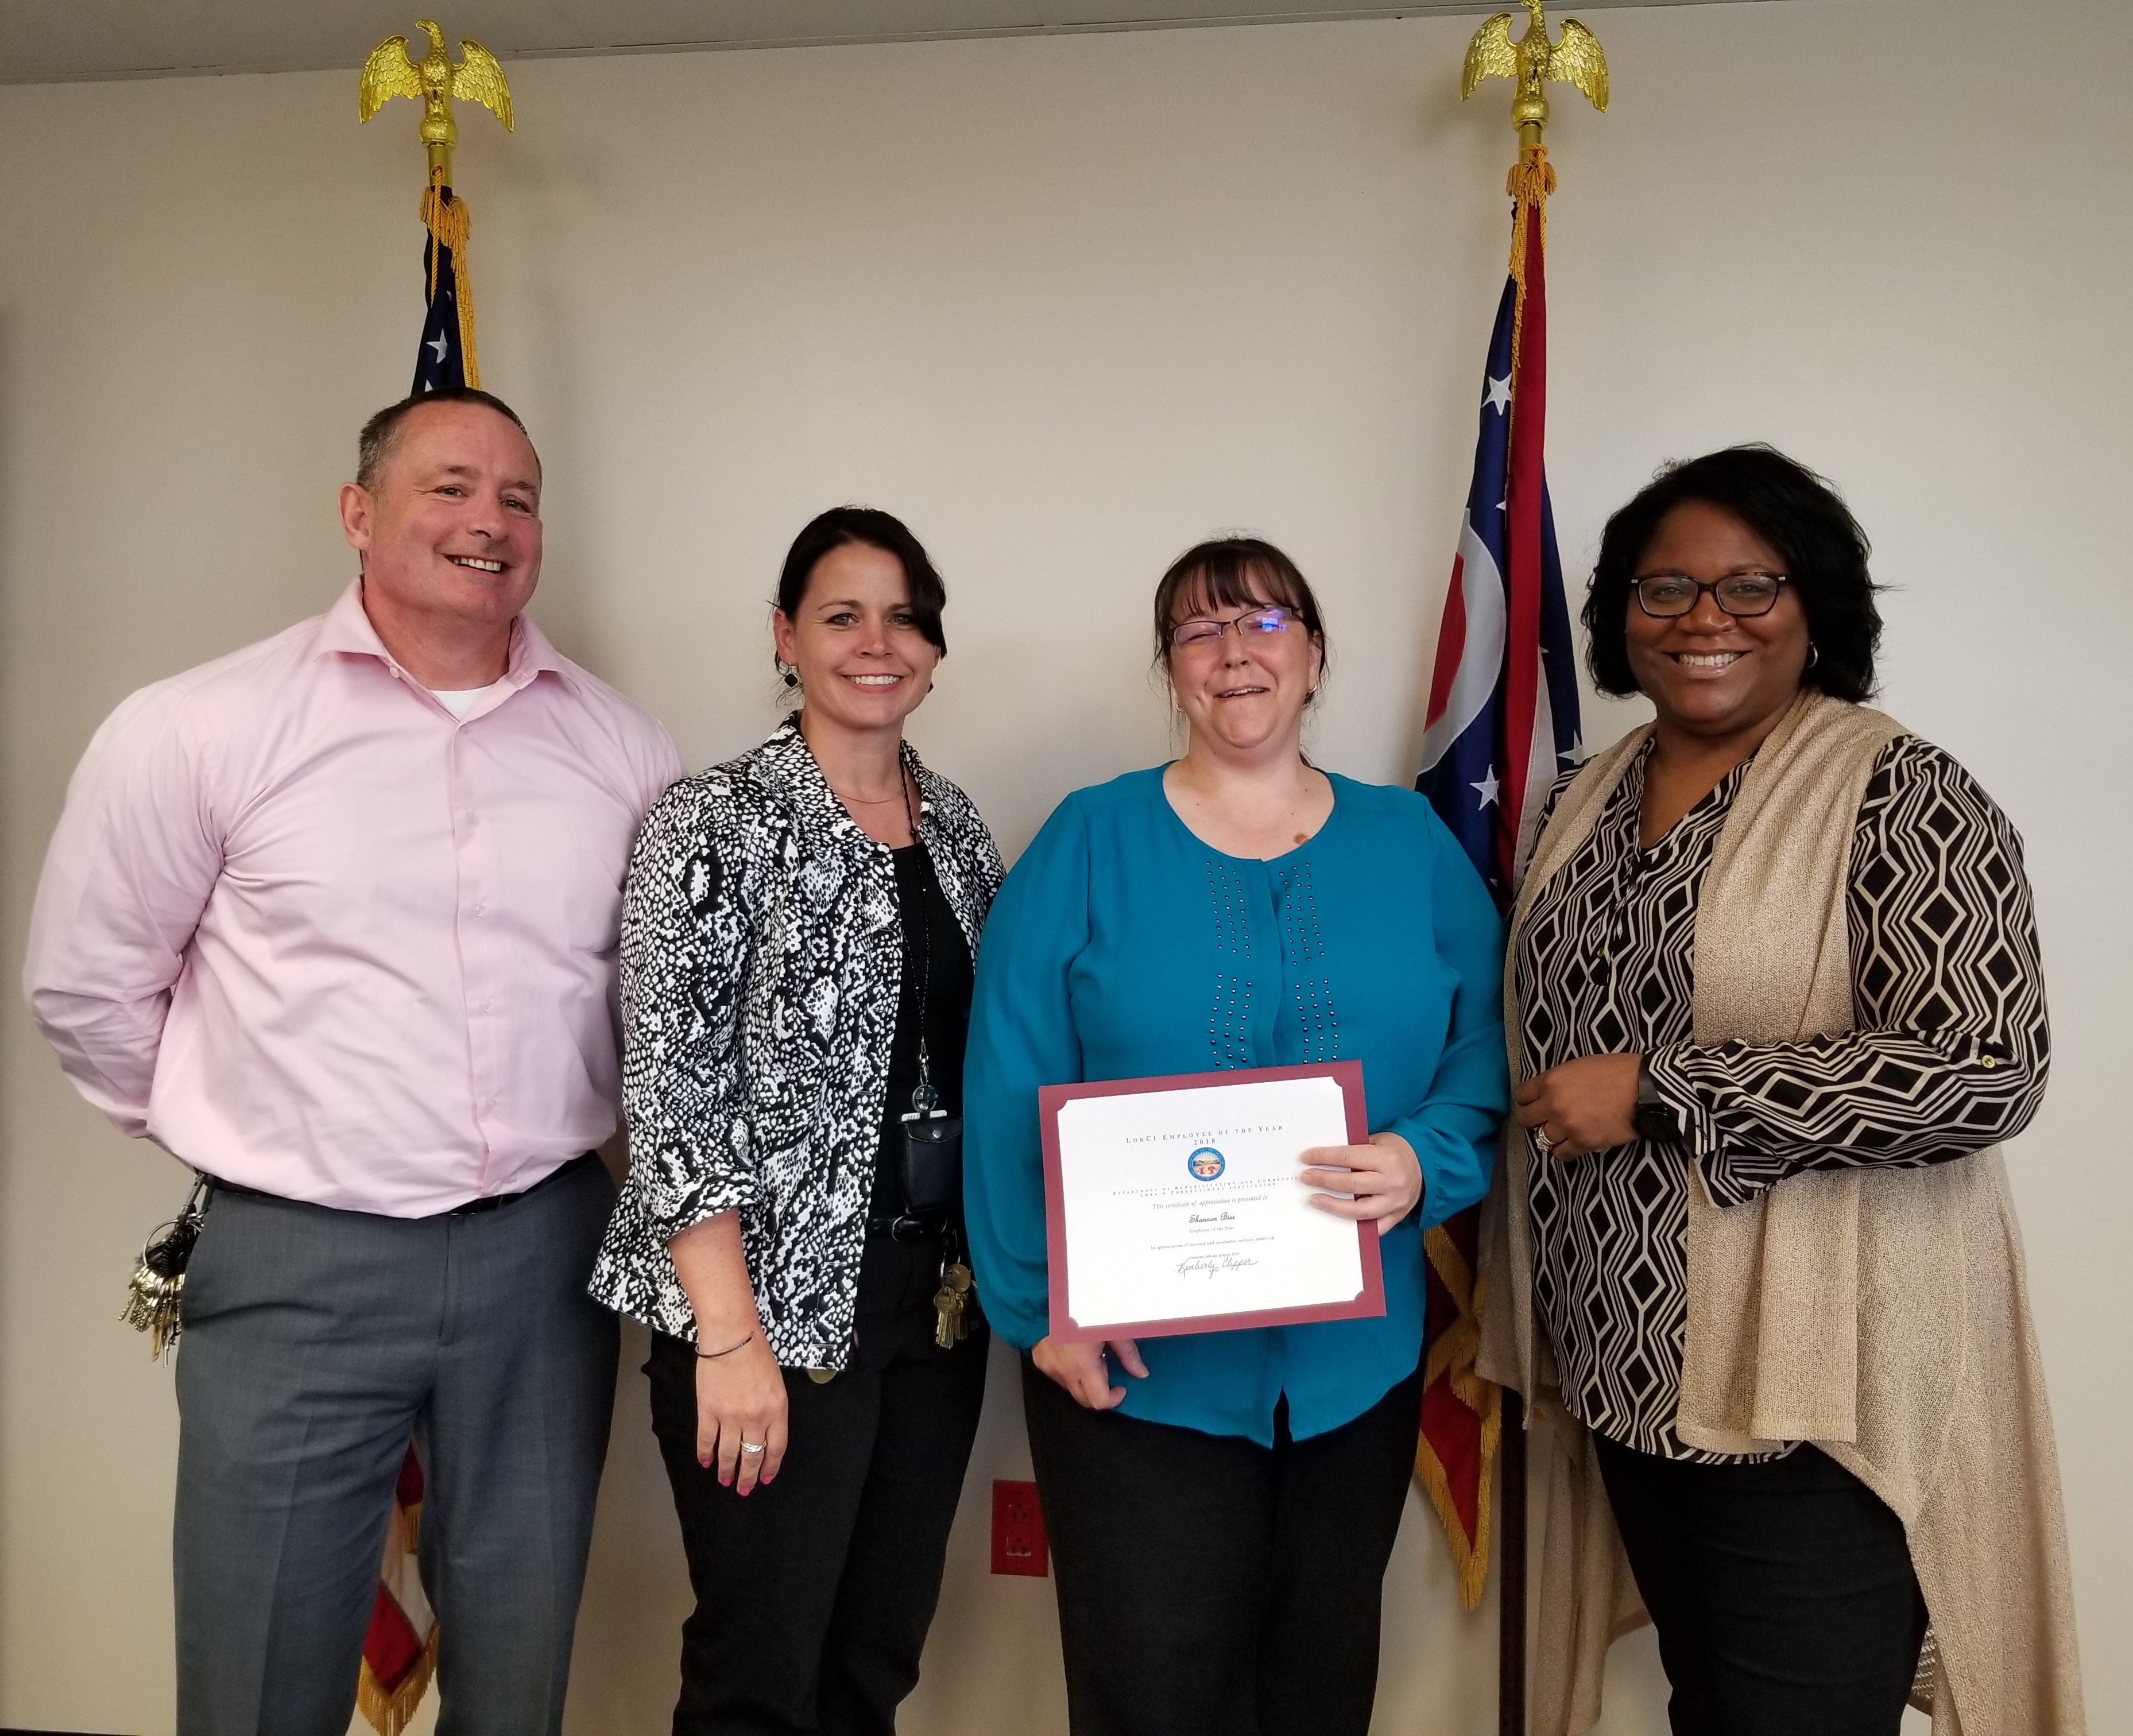 LorCI's 2018 Employee of the Year Shannon Bier